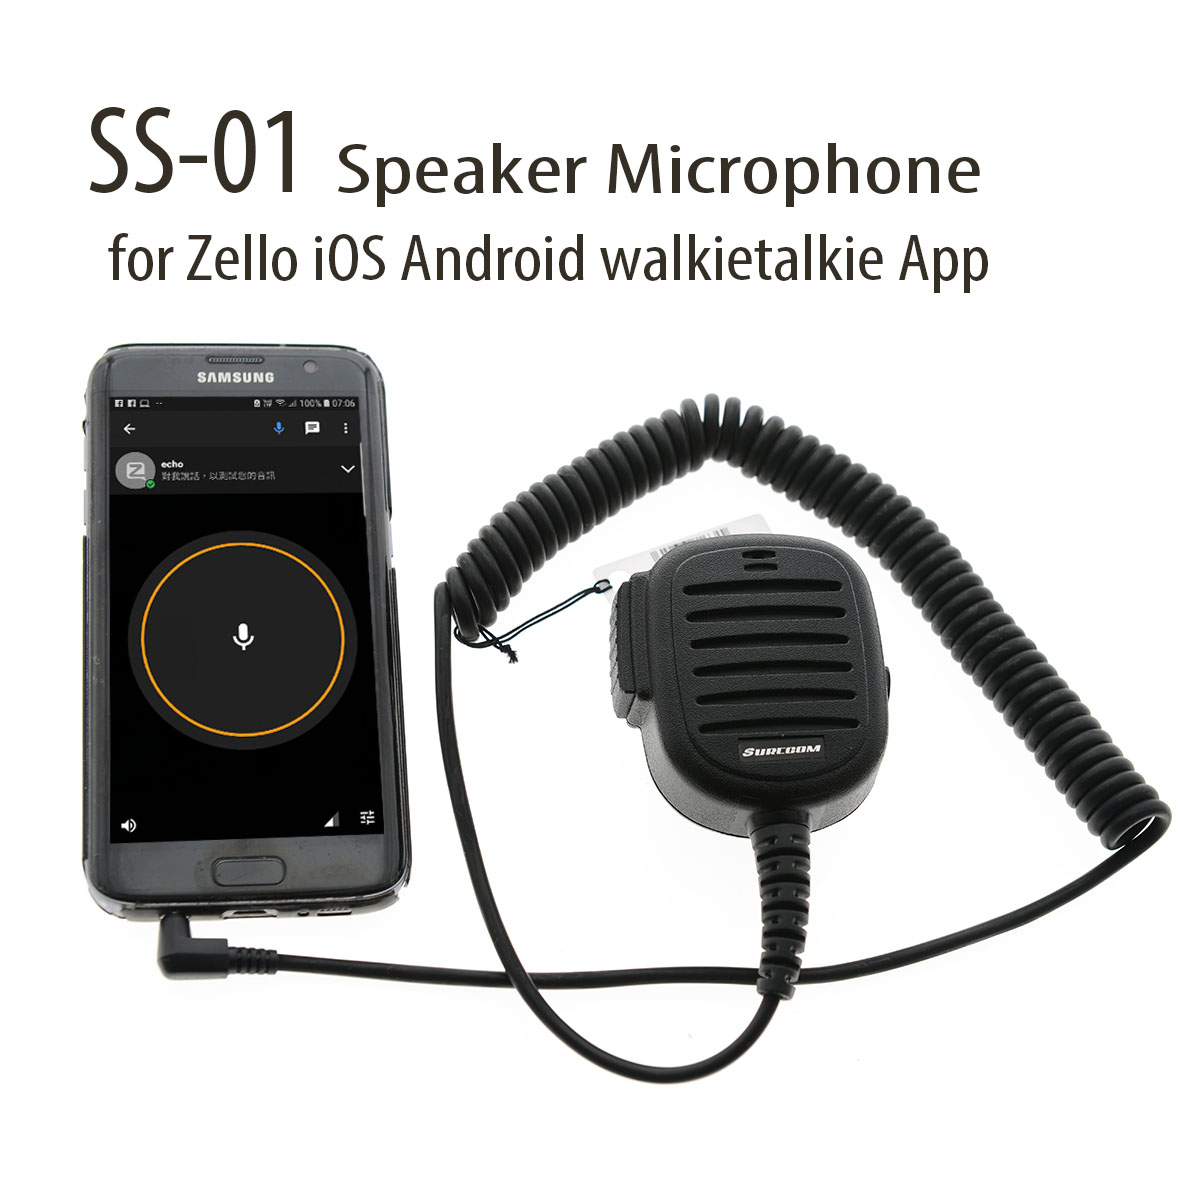 surecom-ss01-zello-speakermic